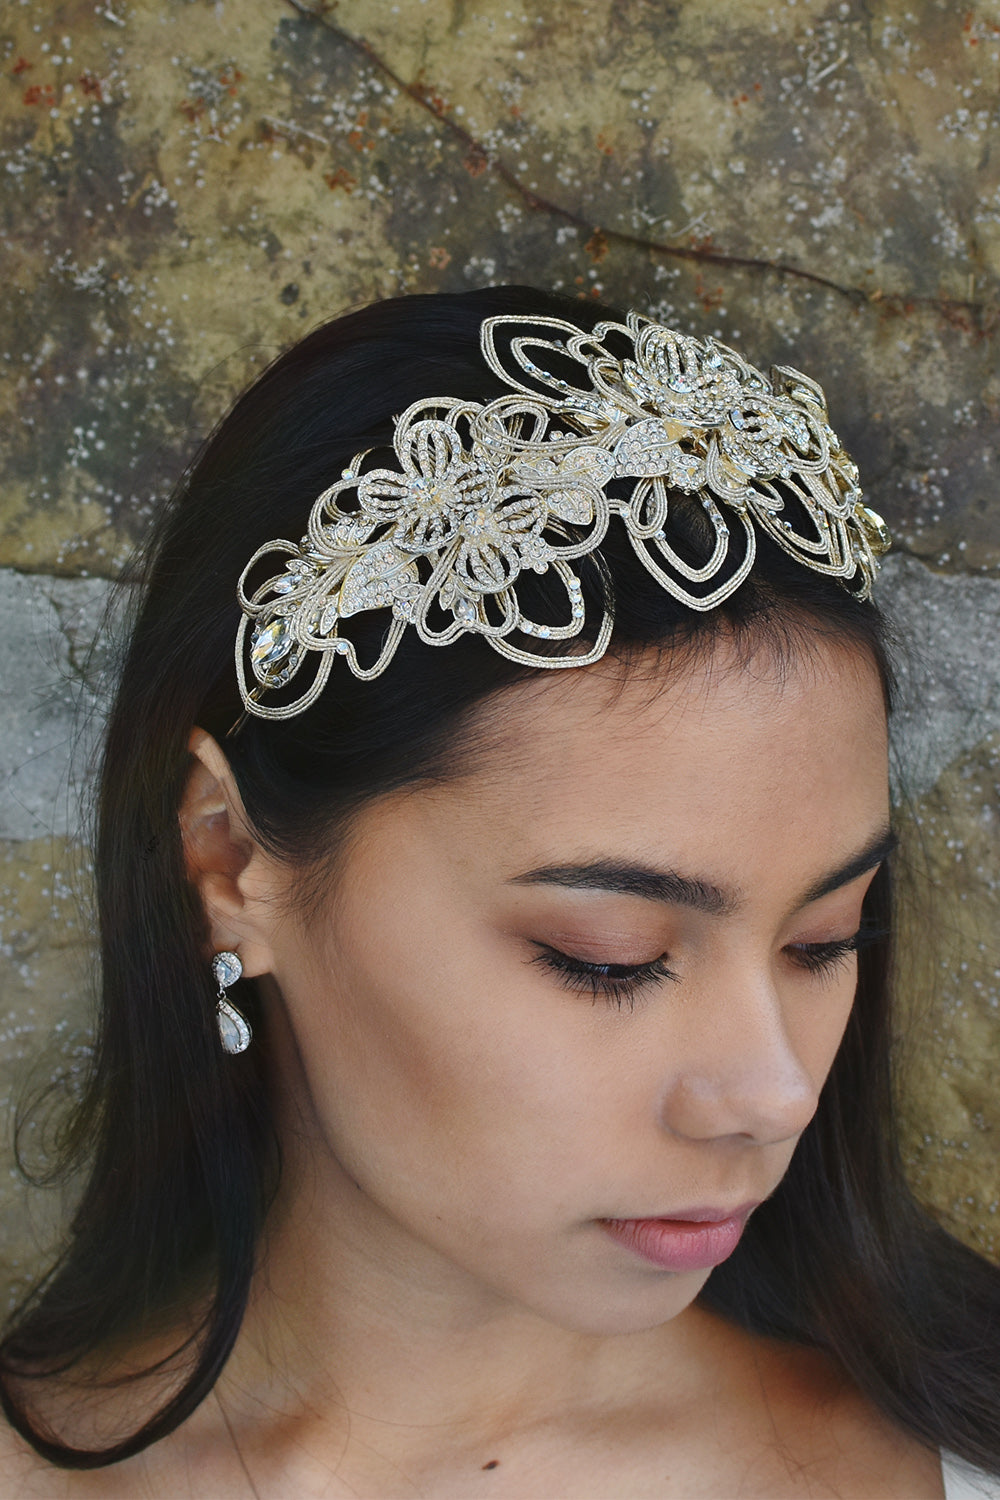 Dark haired model wearing a matt gold bridal headband at the front of her head. There is a stone wall behind her.